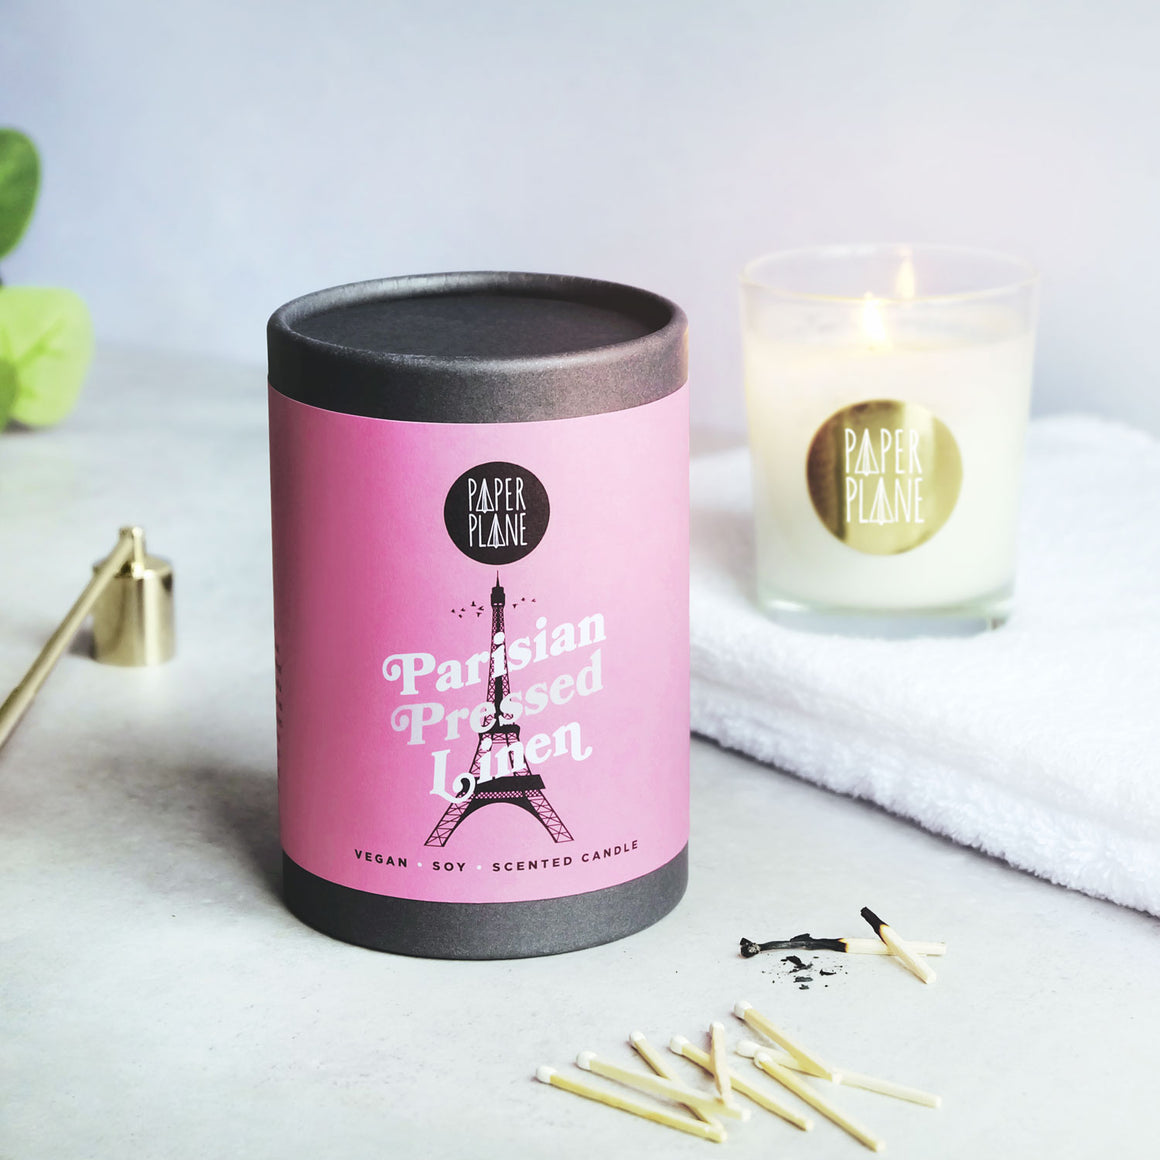 Parisian Pressed Linen Vegan Soy Candle